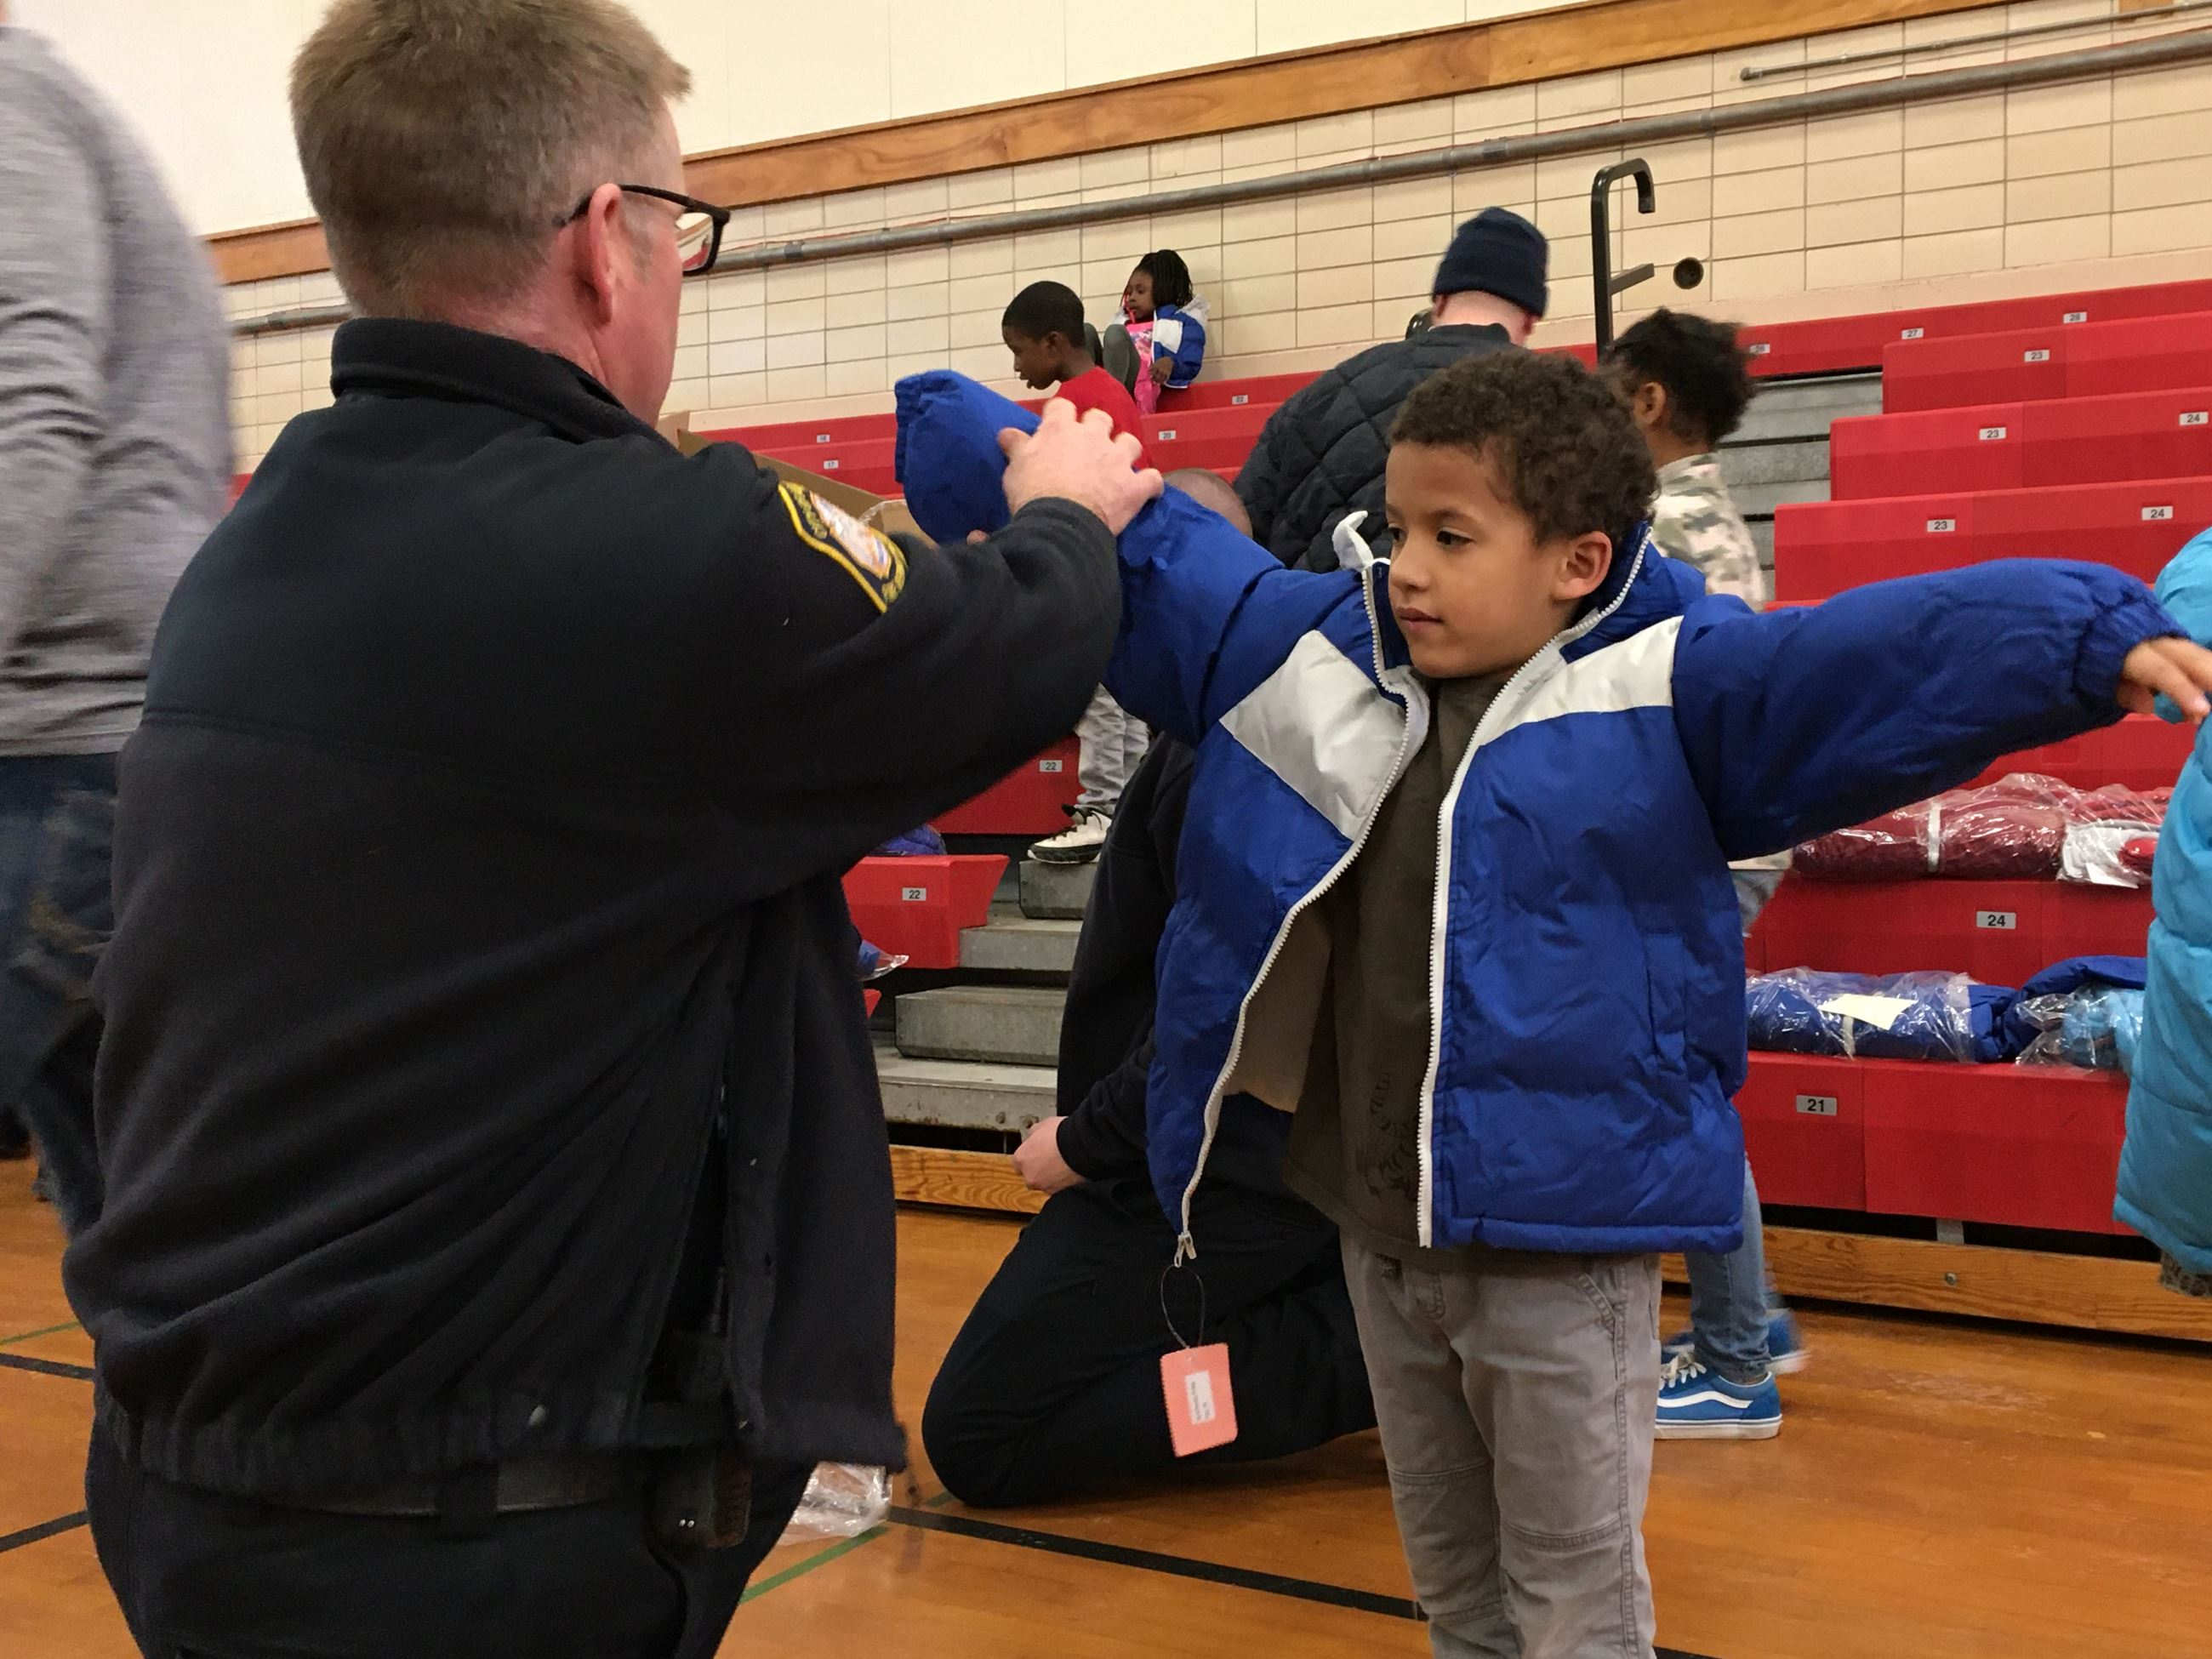 a firefighter helps a boy try on a coat